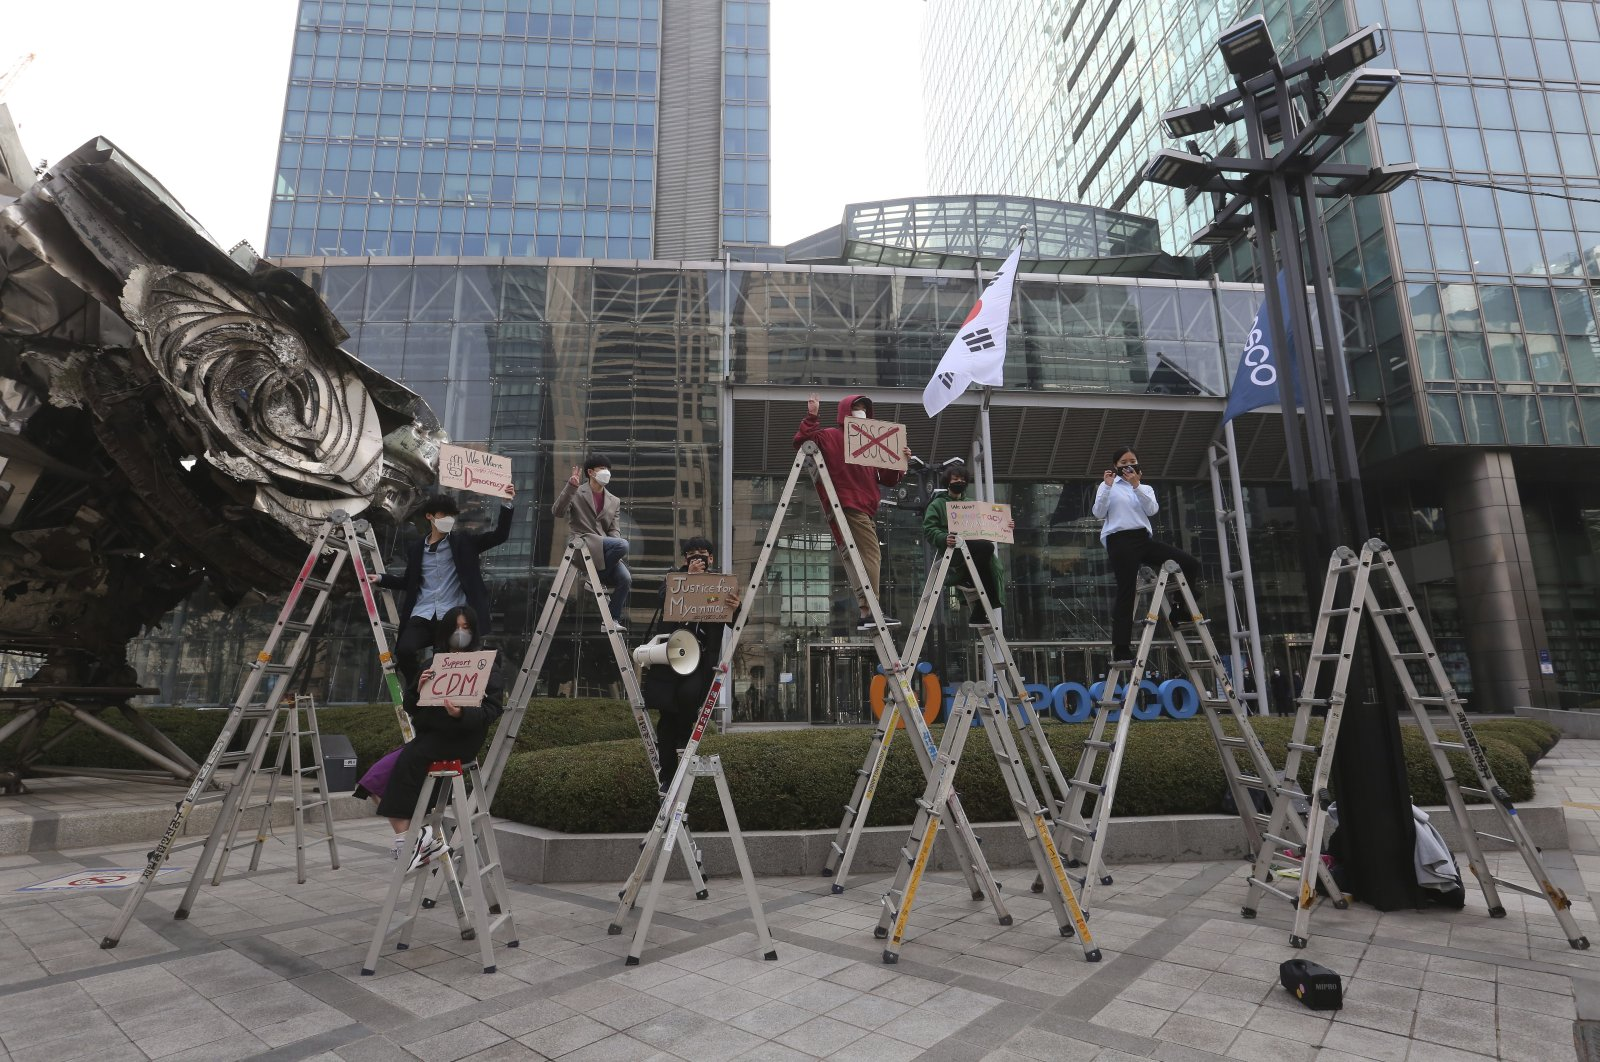 South Korean peace activists on the ladders stage a rally supporting Myanmar's democracy, outside the POSCO office in Seoul, South Korea on Feb. 22, 2021. (AP Photo)